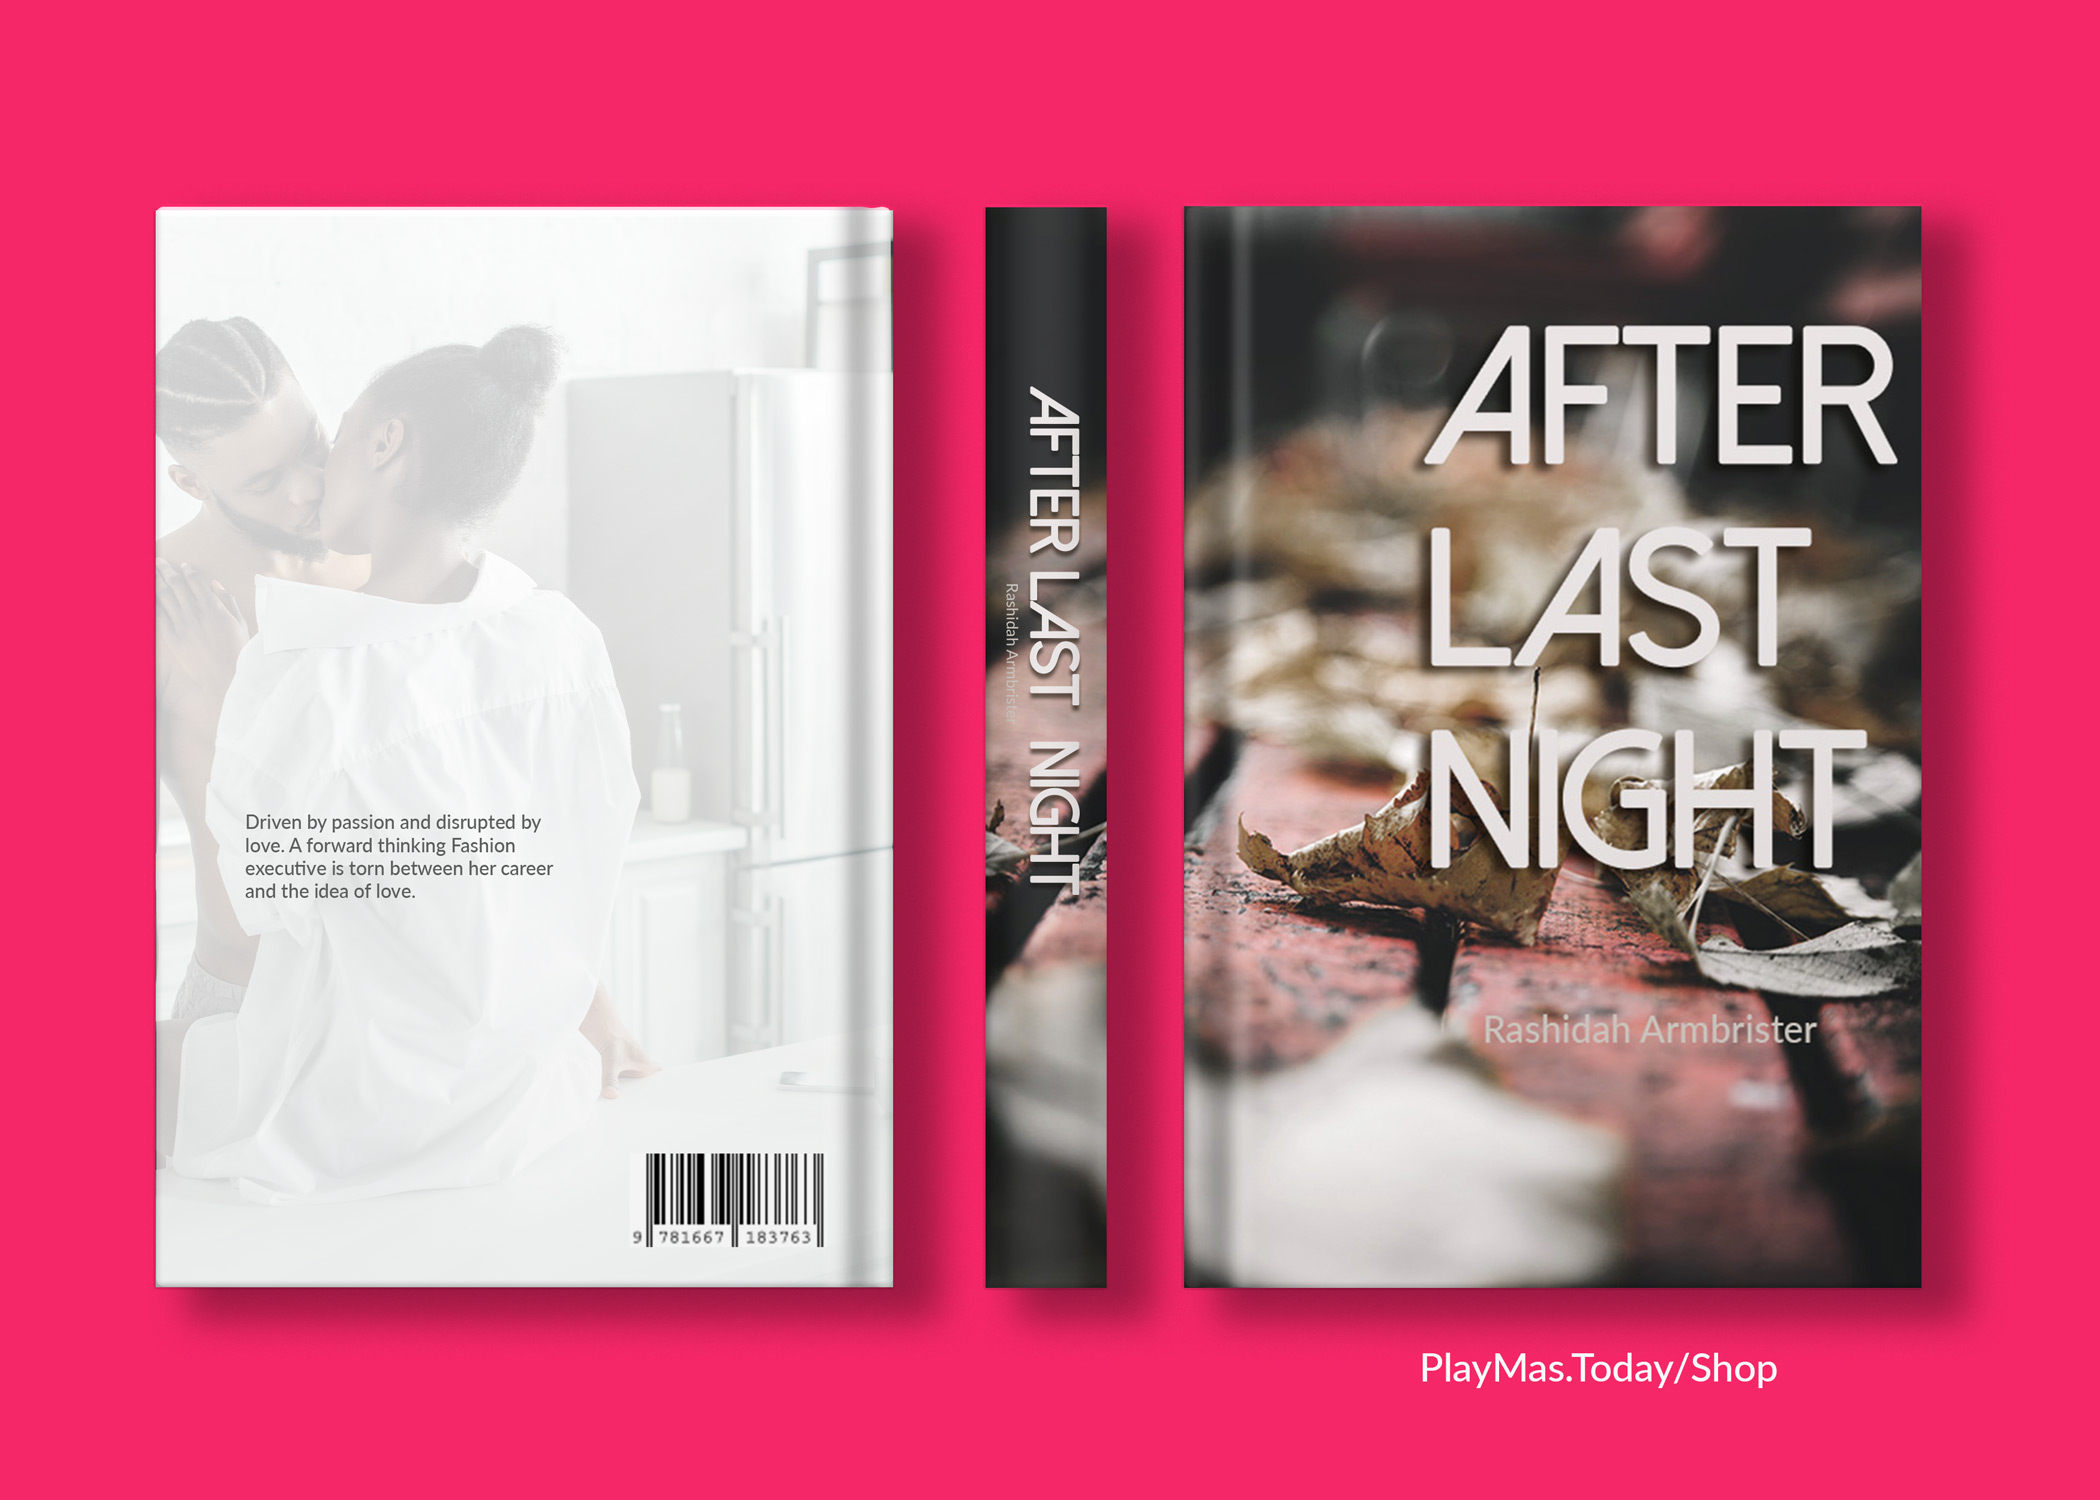 After Last Night is a romance novel with a hint of erotica. The story follows our lead character Virginia Sales, a Fashion Executive out of NYC.